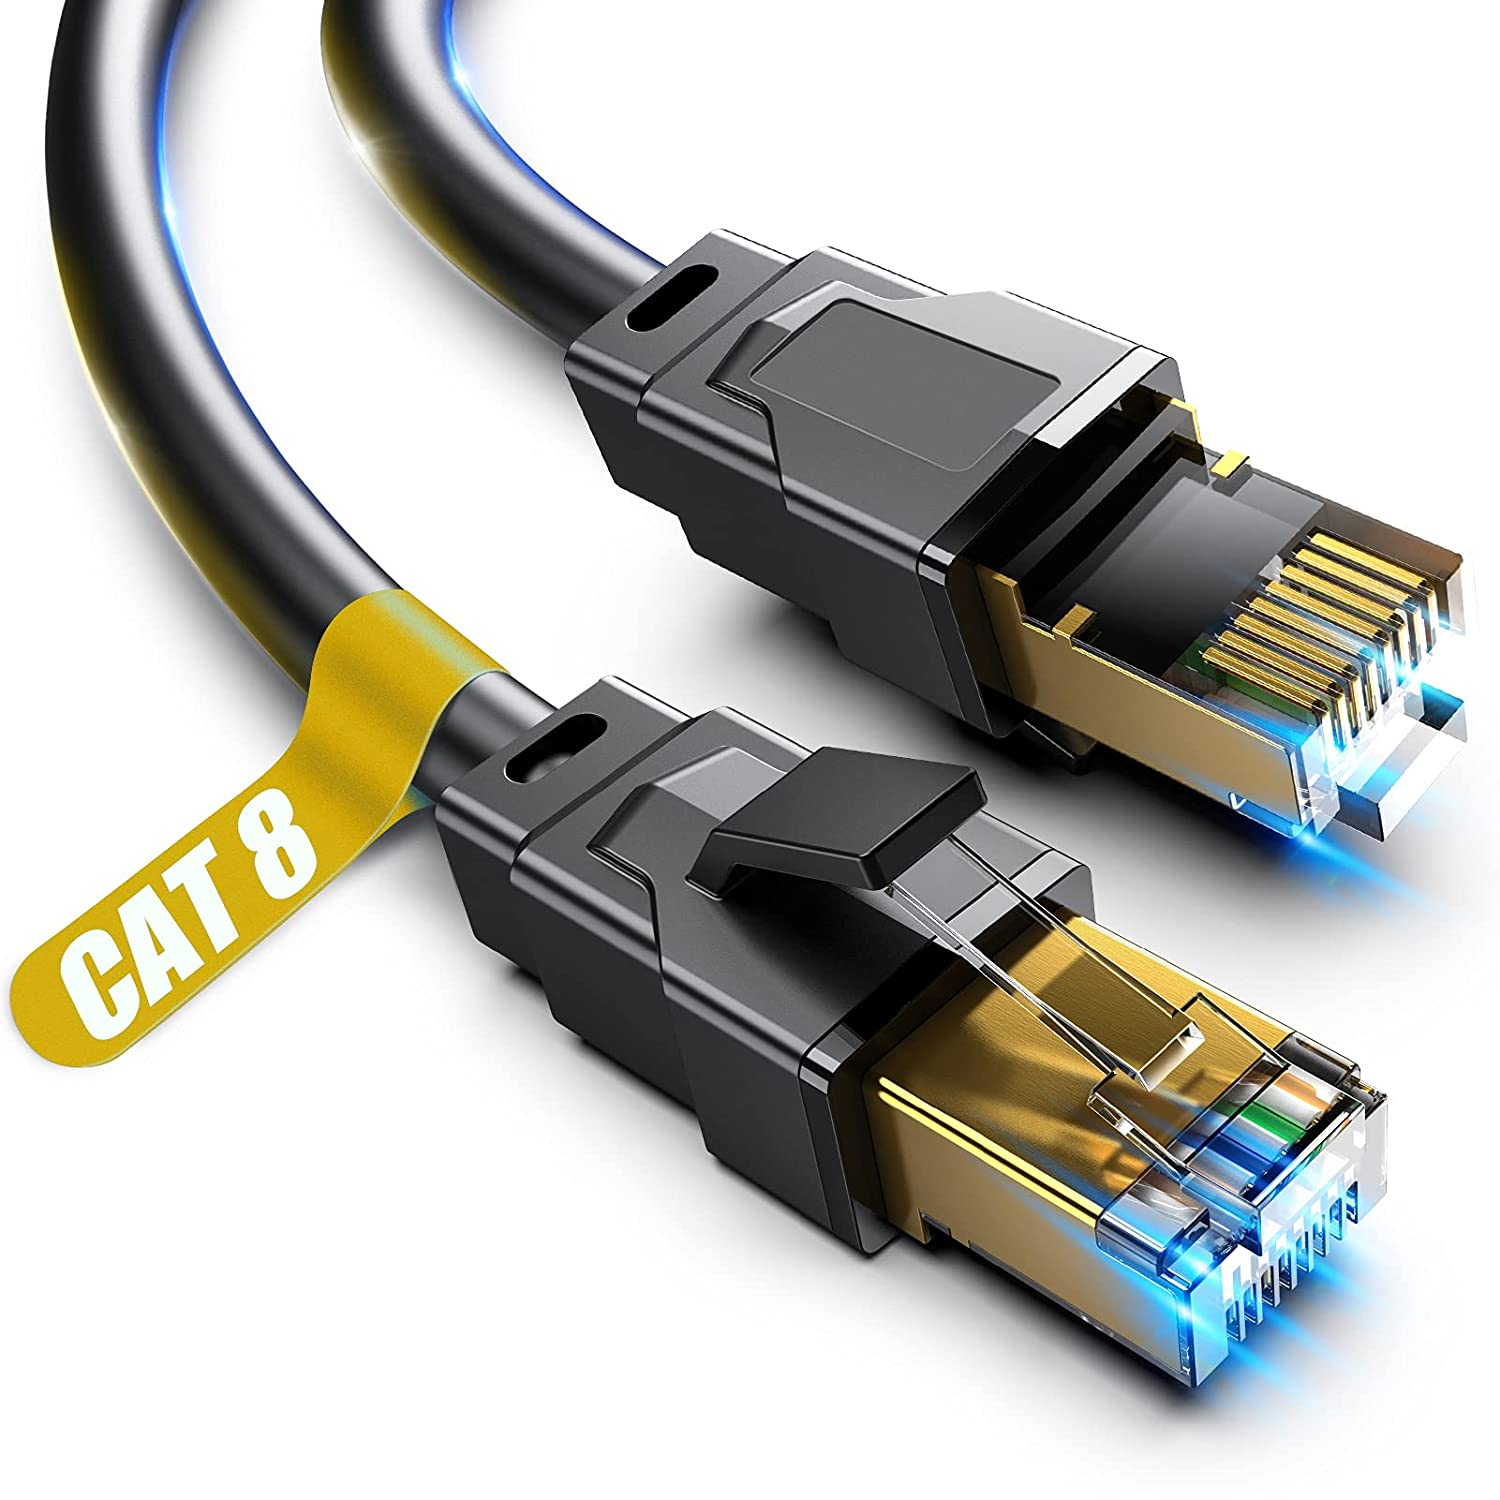 Cat 8 Ethernet Cable 50ft Heavy Networ Luxury goods Duty Sacramento Mall High Speed Internet